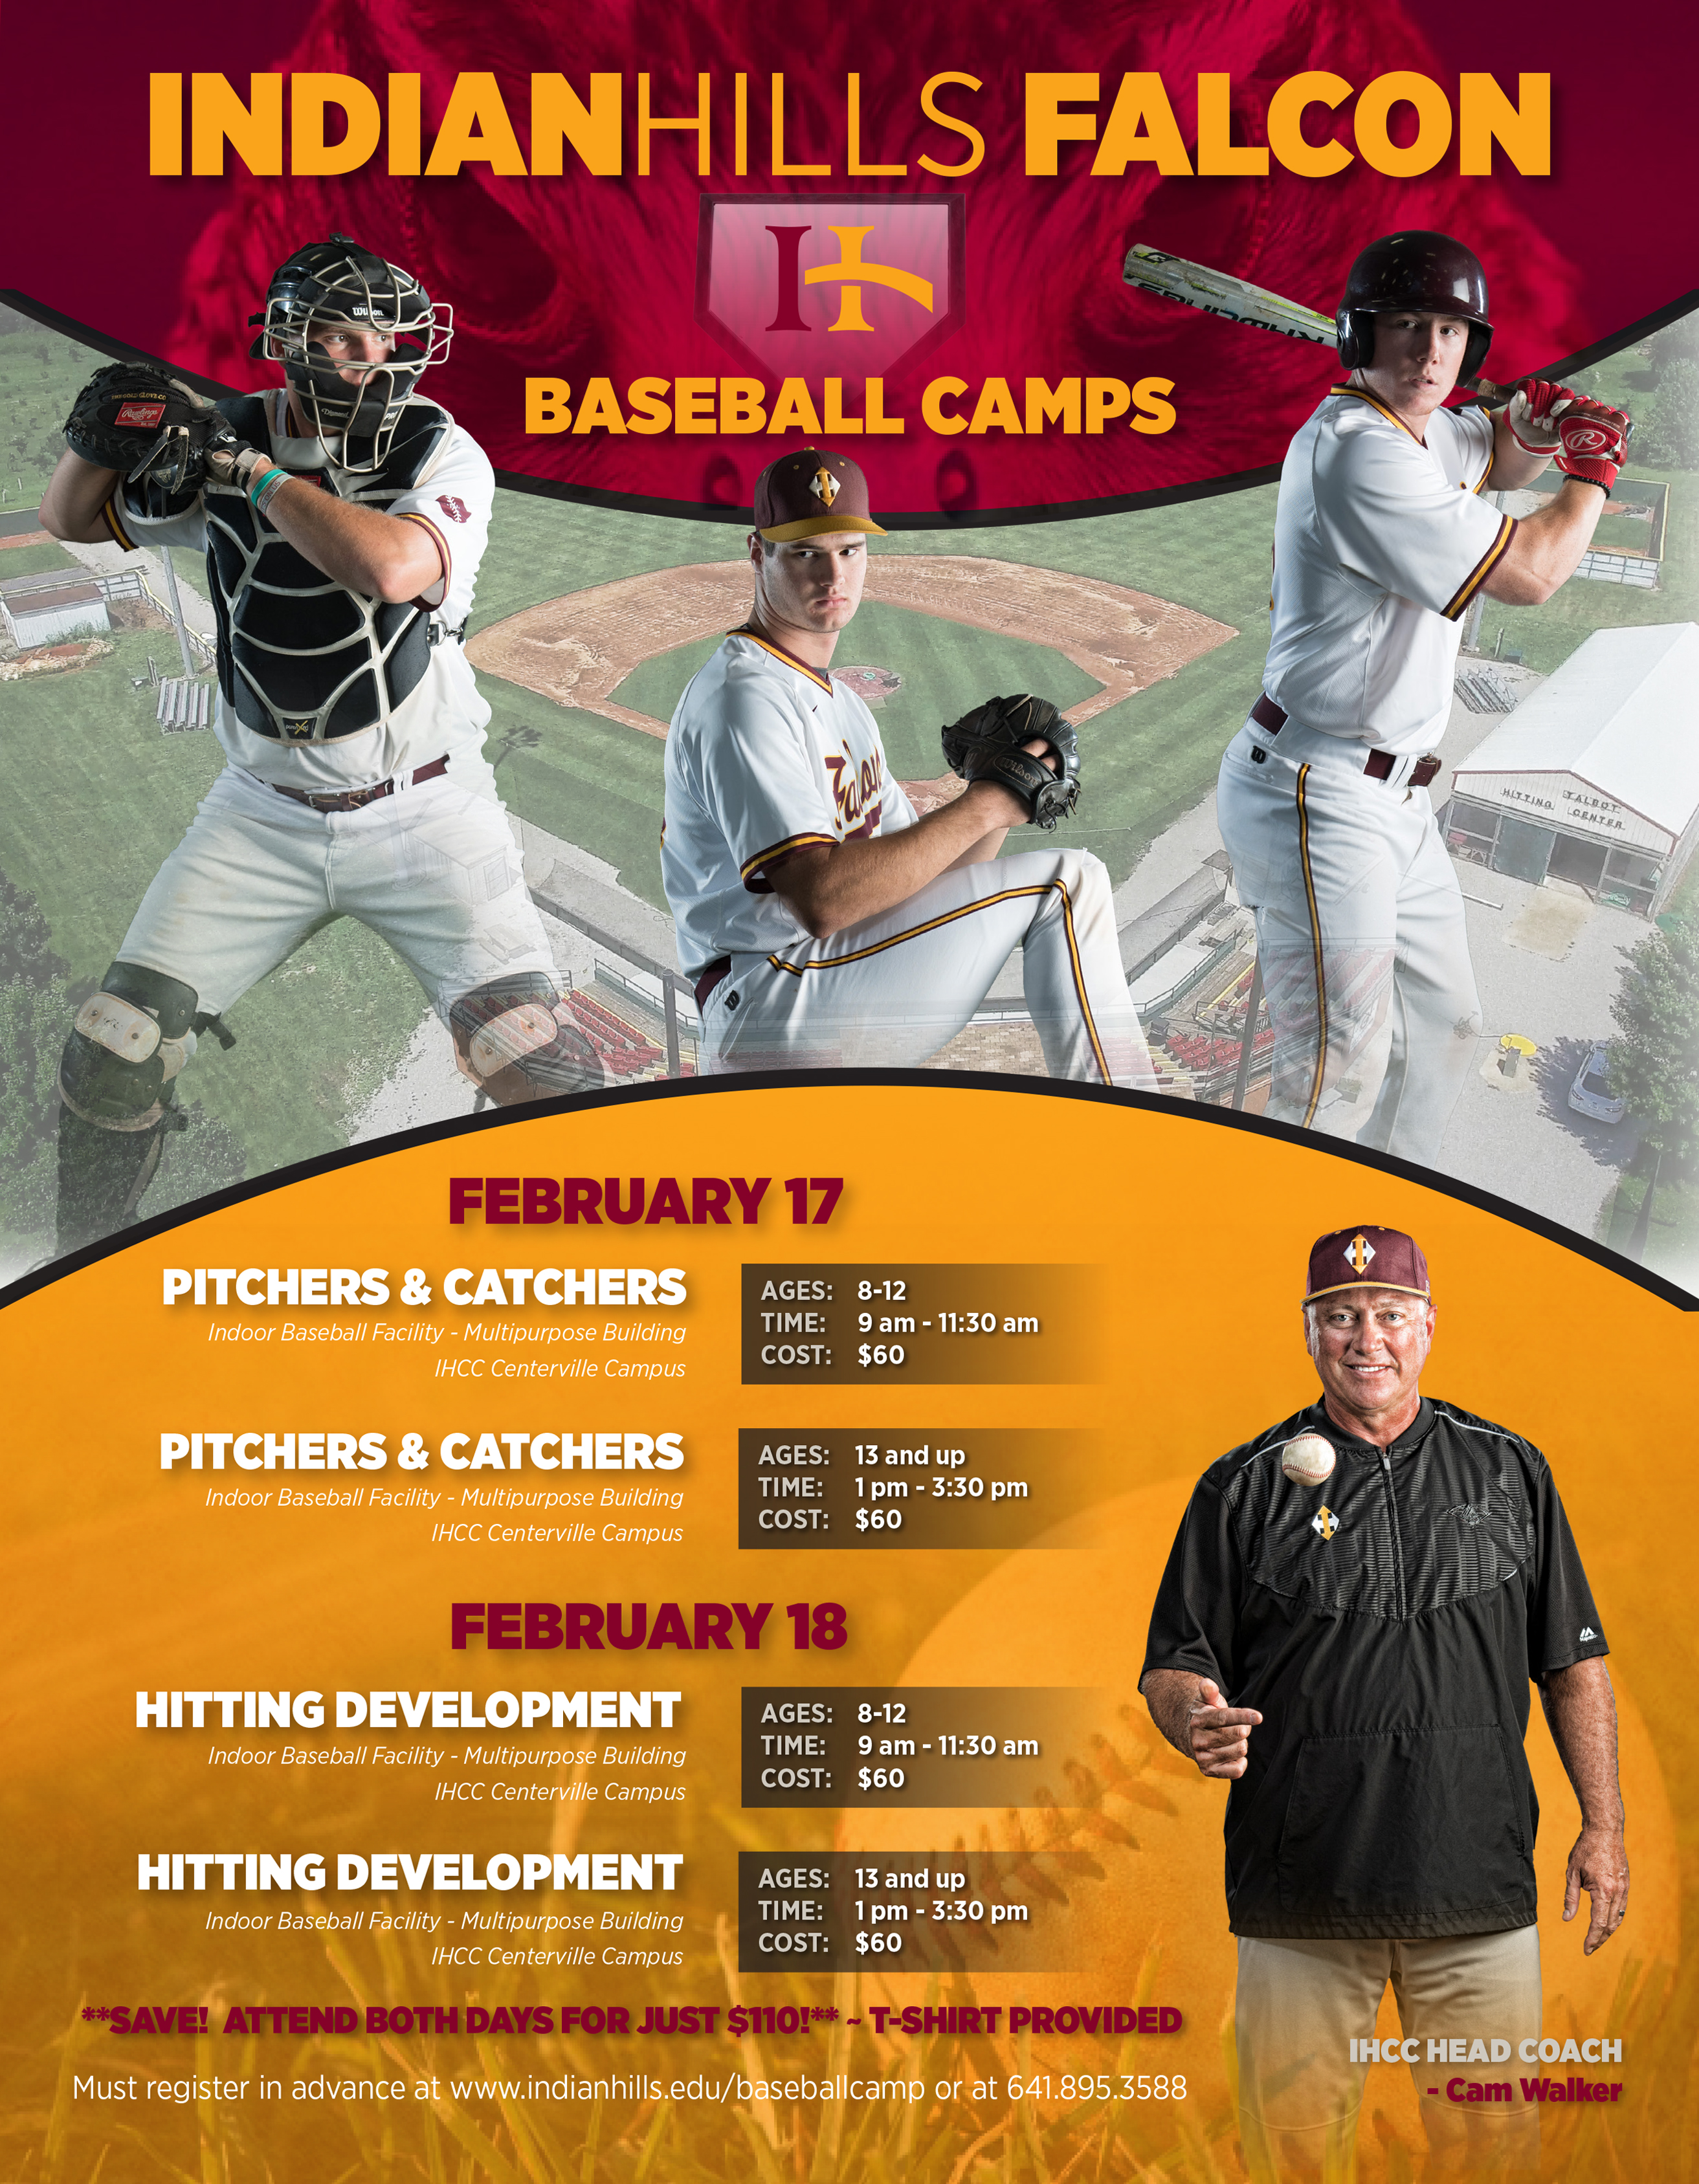 Indian Hills Falcon Baseball Camp